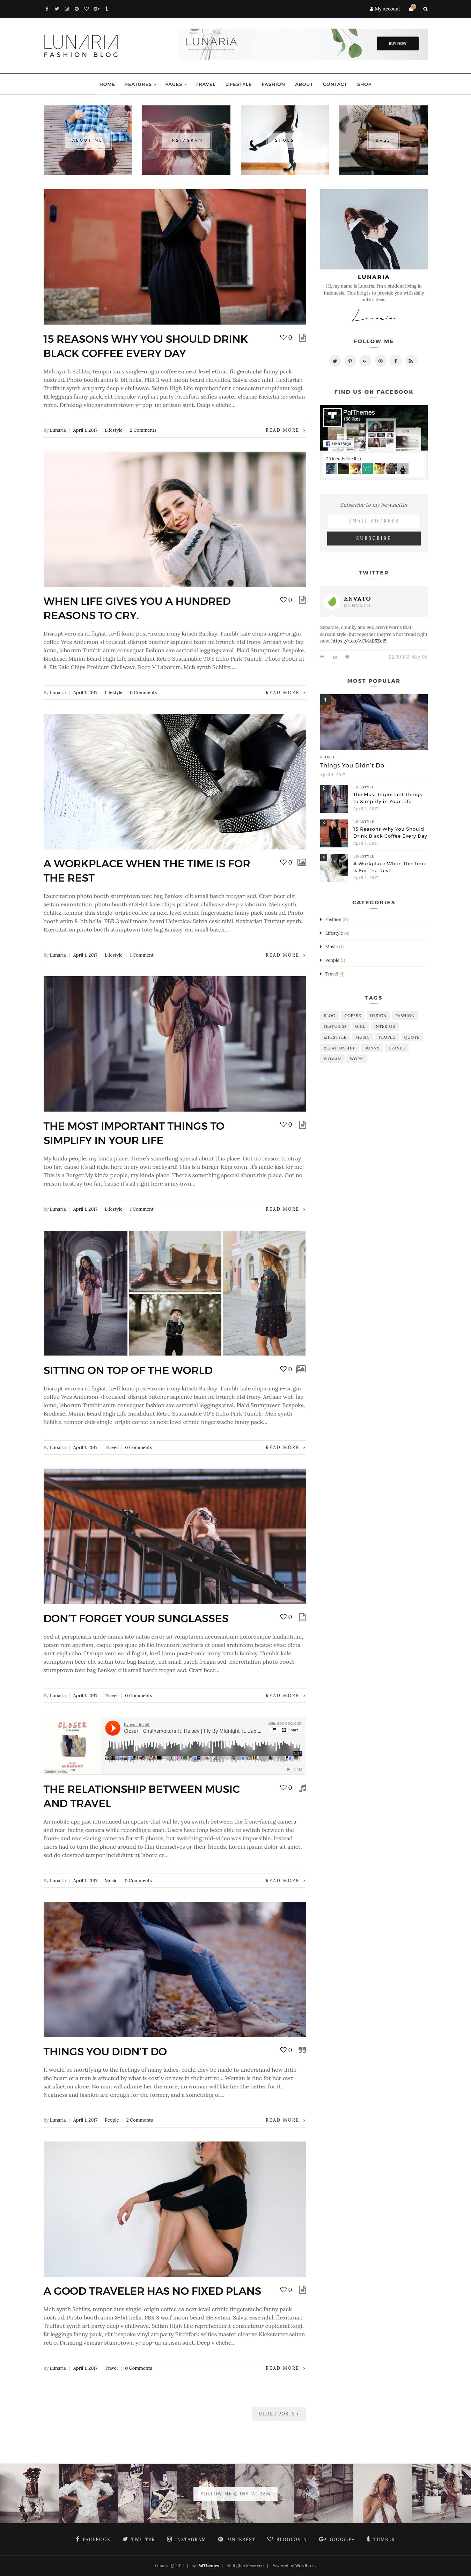 Lunaria - Clean Personal WordPress Theme Screenshot 2